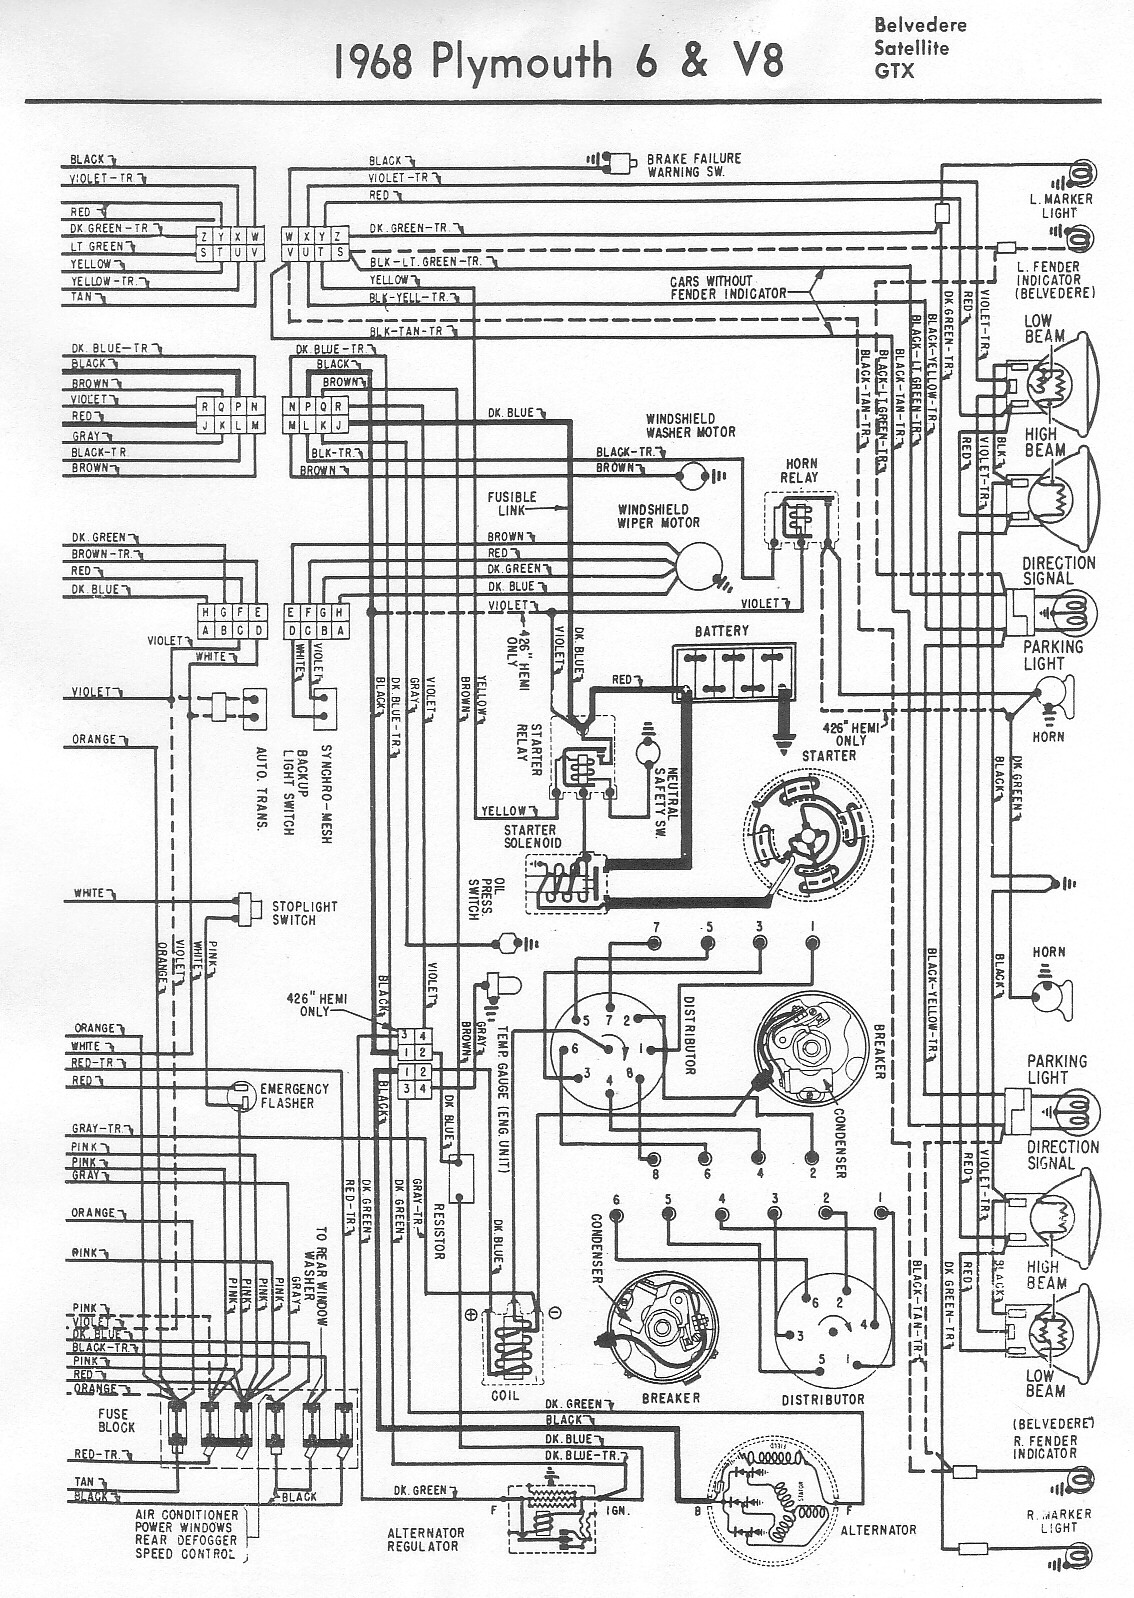 WRG-8579] 1969 Plymouth Road Runner Dash Wiring Diagram on 70 charger wiring diagram, 61 impala wiring diagram, 71 cuda wiper motor, 70 cuda wiring diagram, 67 camaro wiring diagram, 68 charger wiring diagram, 1967 pontiac gto wiring diagram, 71 cuda rear suspension,